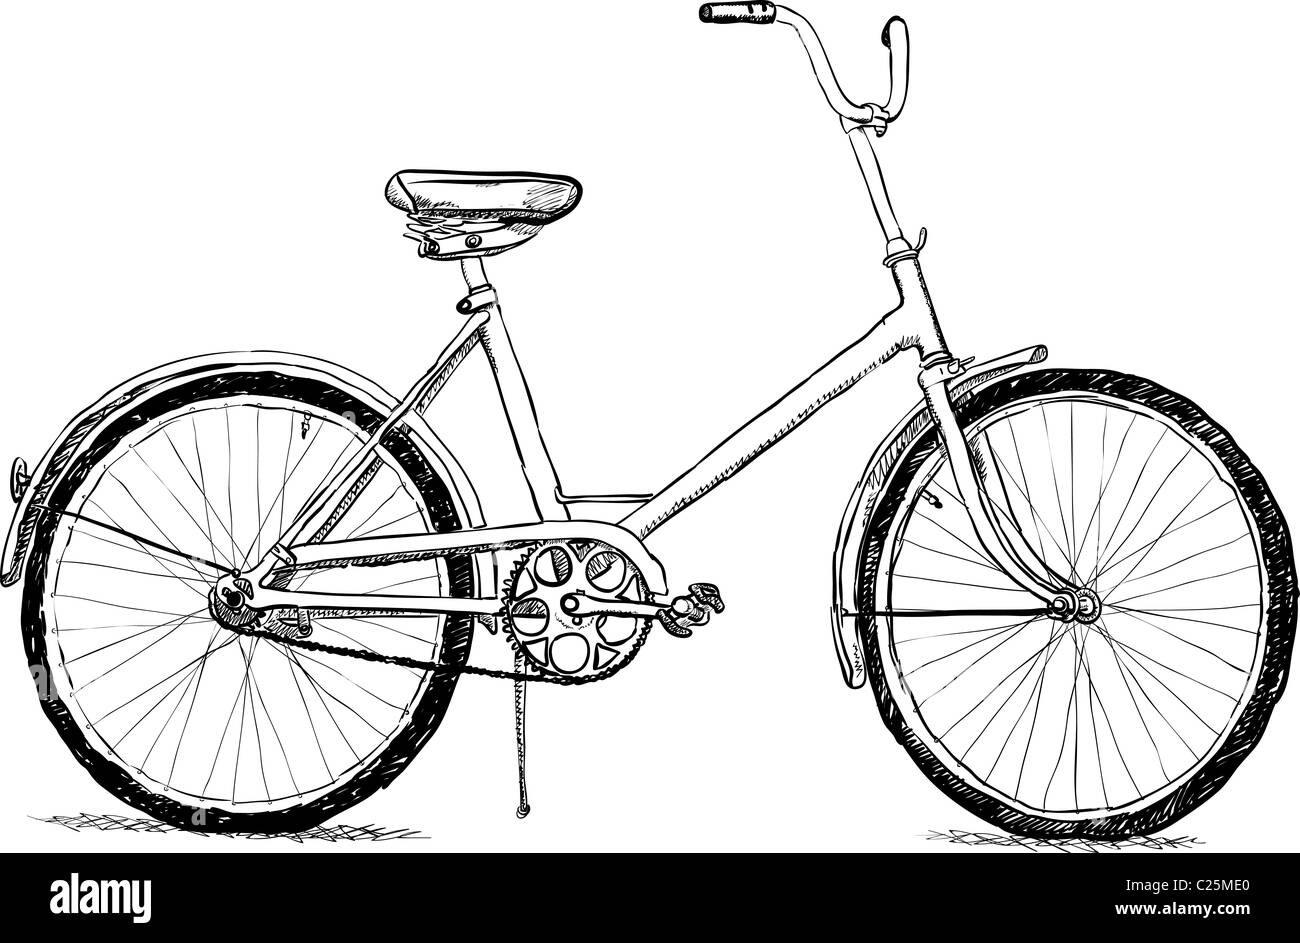 Simple bicycle illustration - photo#7